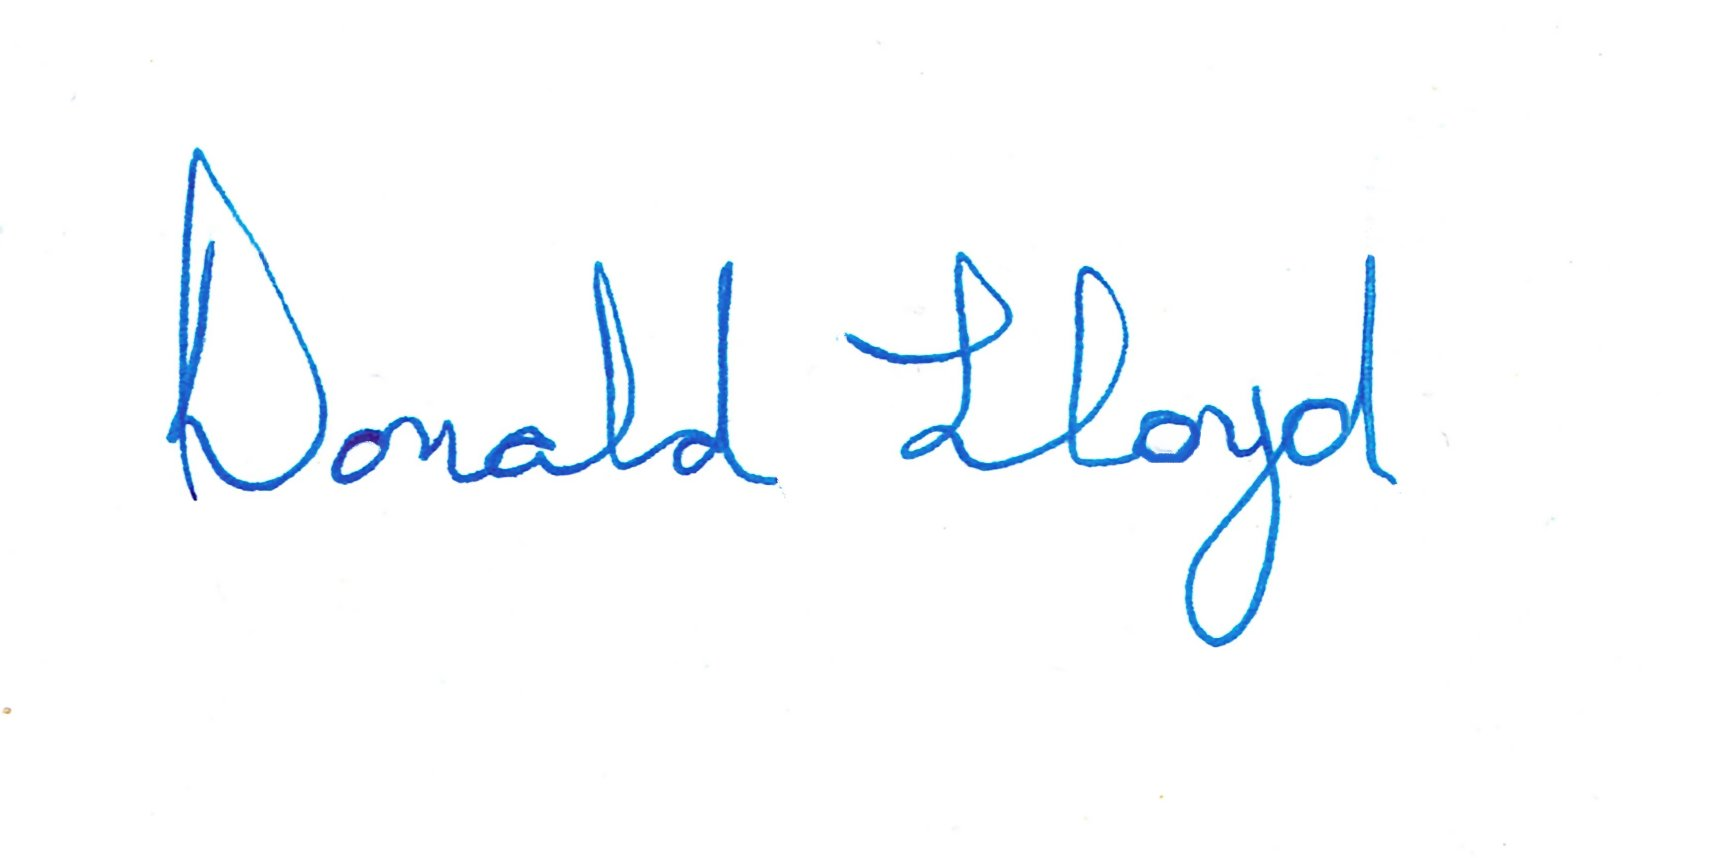 Donald Lloyd's Signature